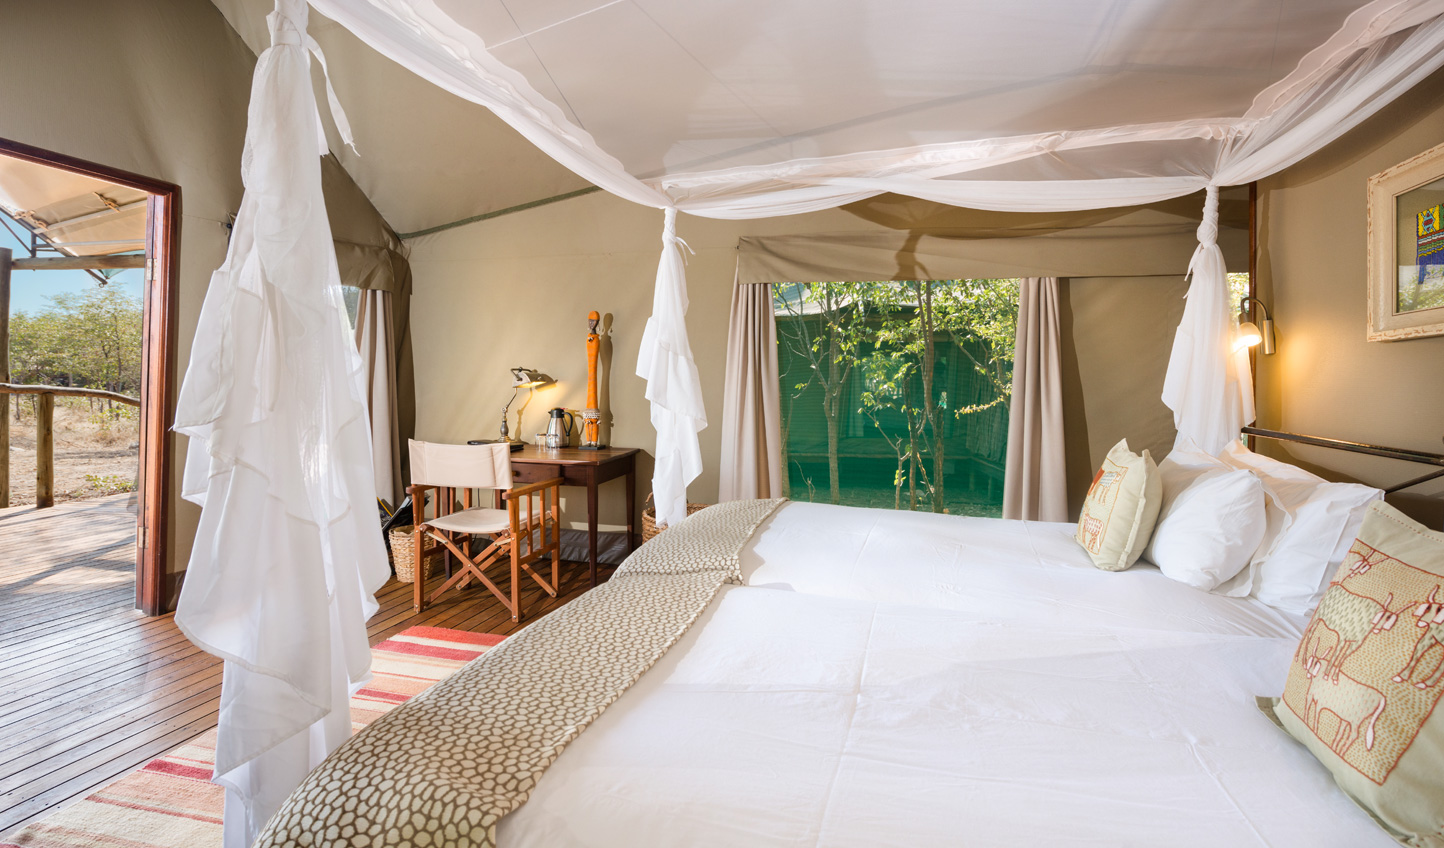 Get up close with nature in your luxury tent at Ongava Tented Camp